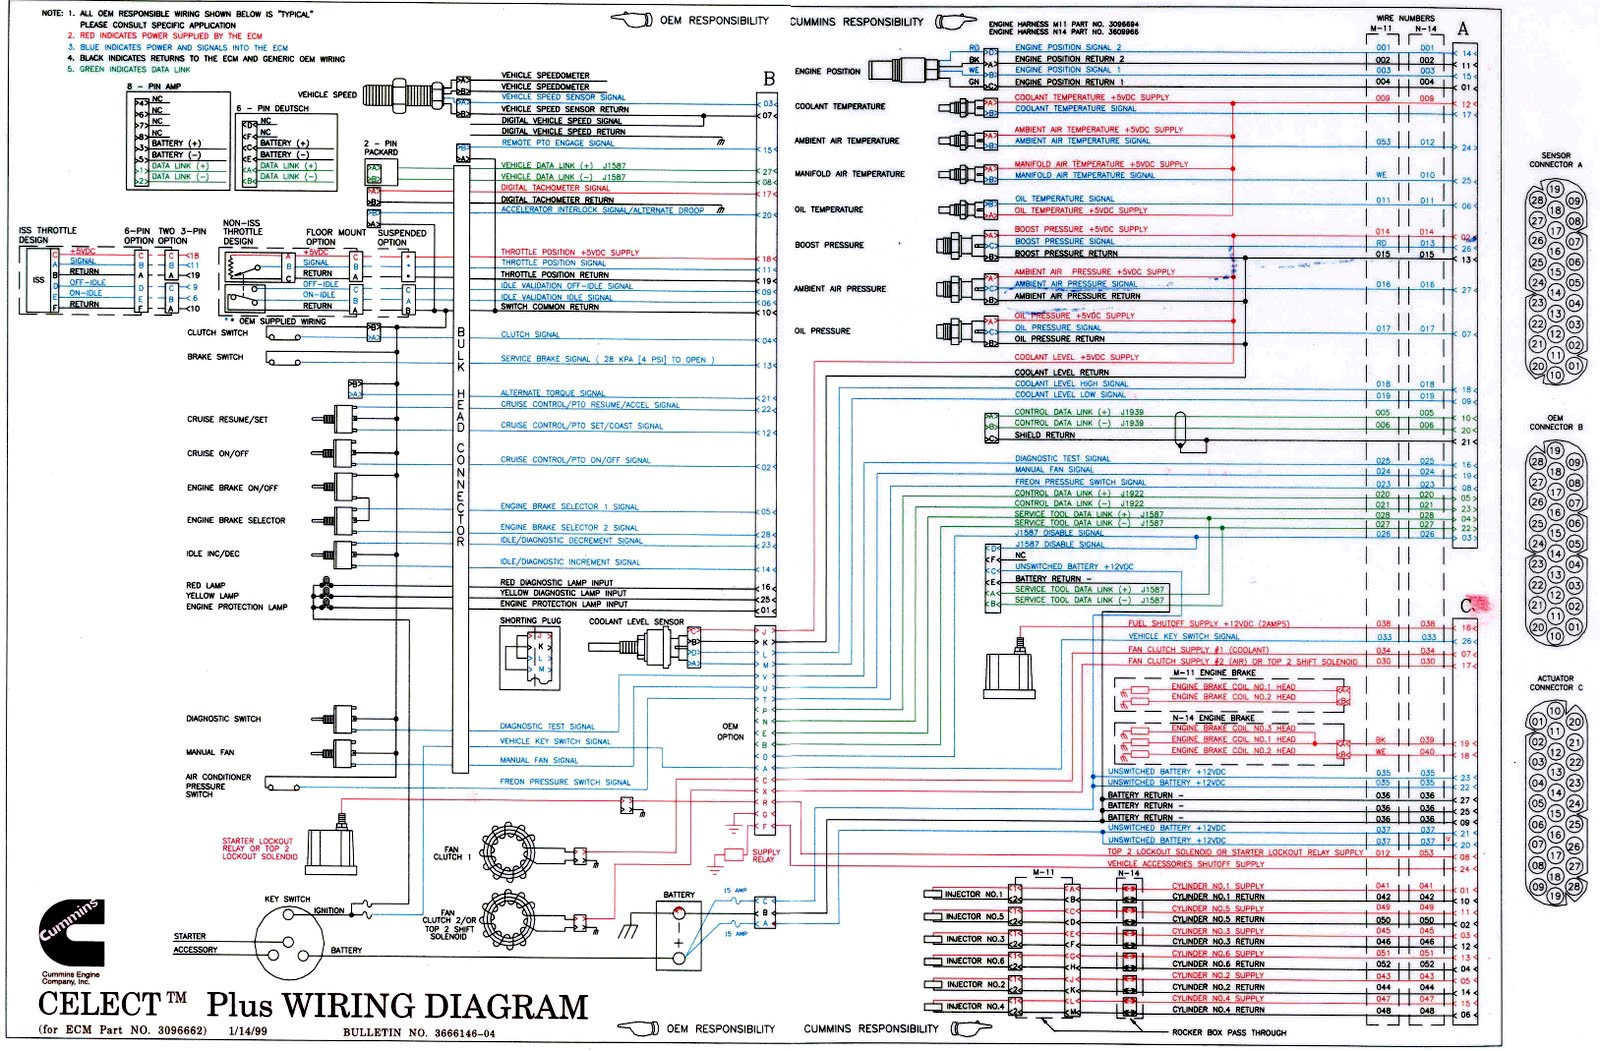 detroit ddec 2 ecm wiring diagram images ddec v ecm plug diagram 60 ecm wiring diagram together detroit diesel ddec ii